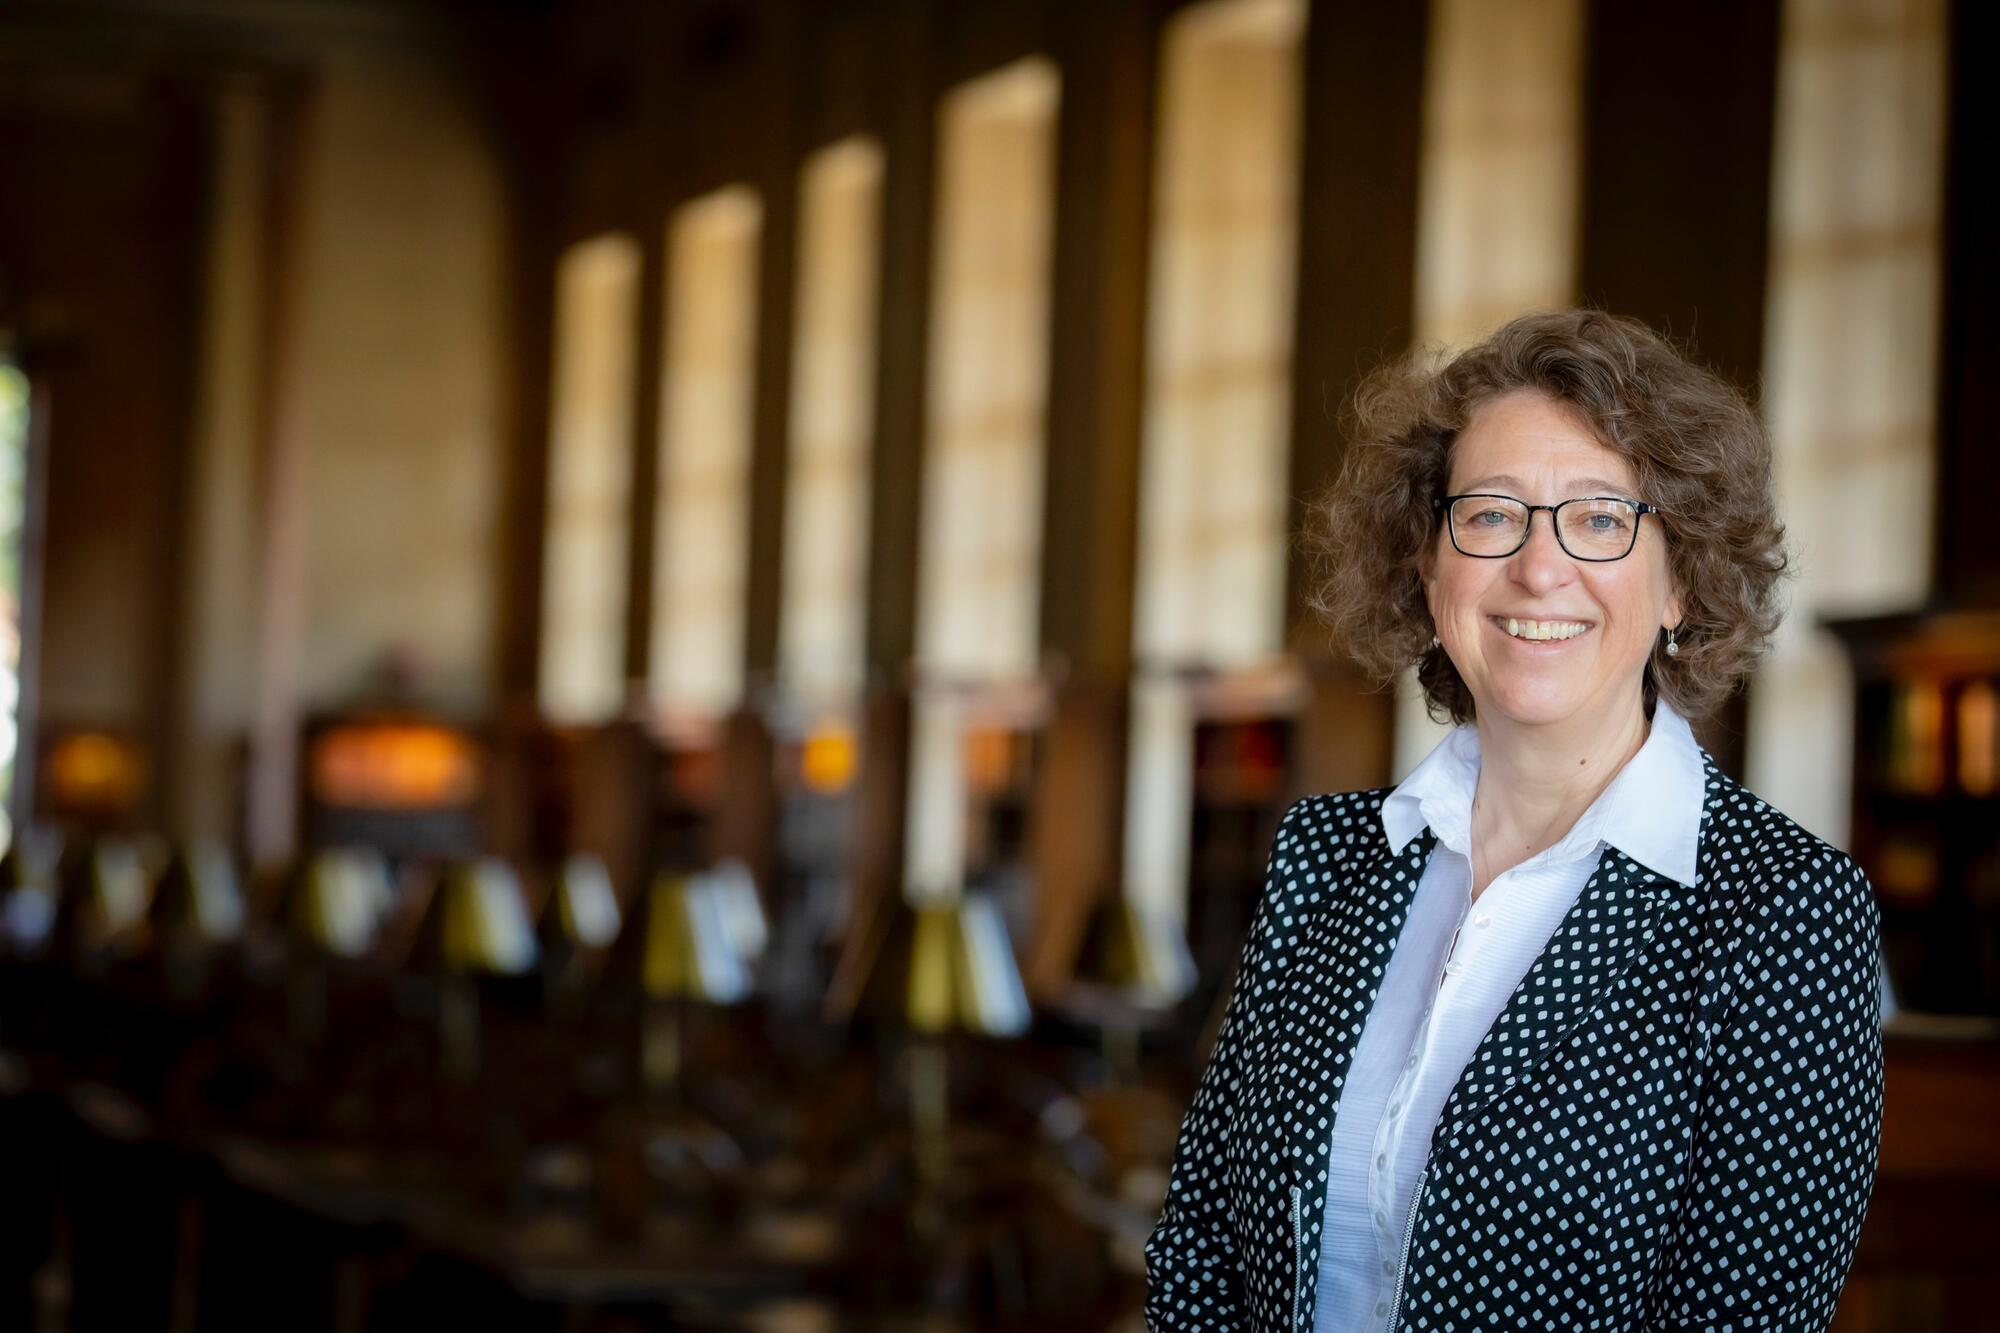 Portrait of Martha Whitehead wearing glasses, a black polka-dotted jacket, and white collared shirt, standing in the Loker Reading Room, with study tables and lamps in the background.